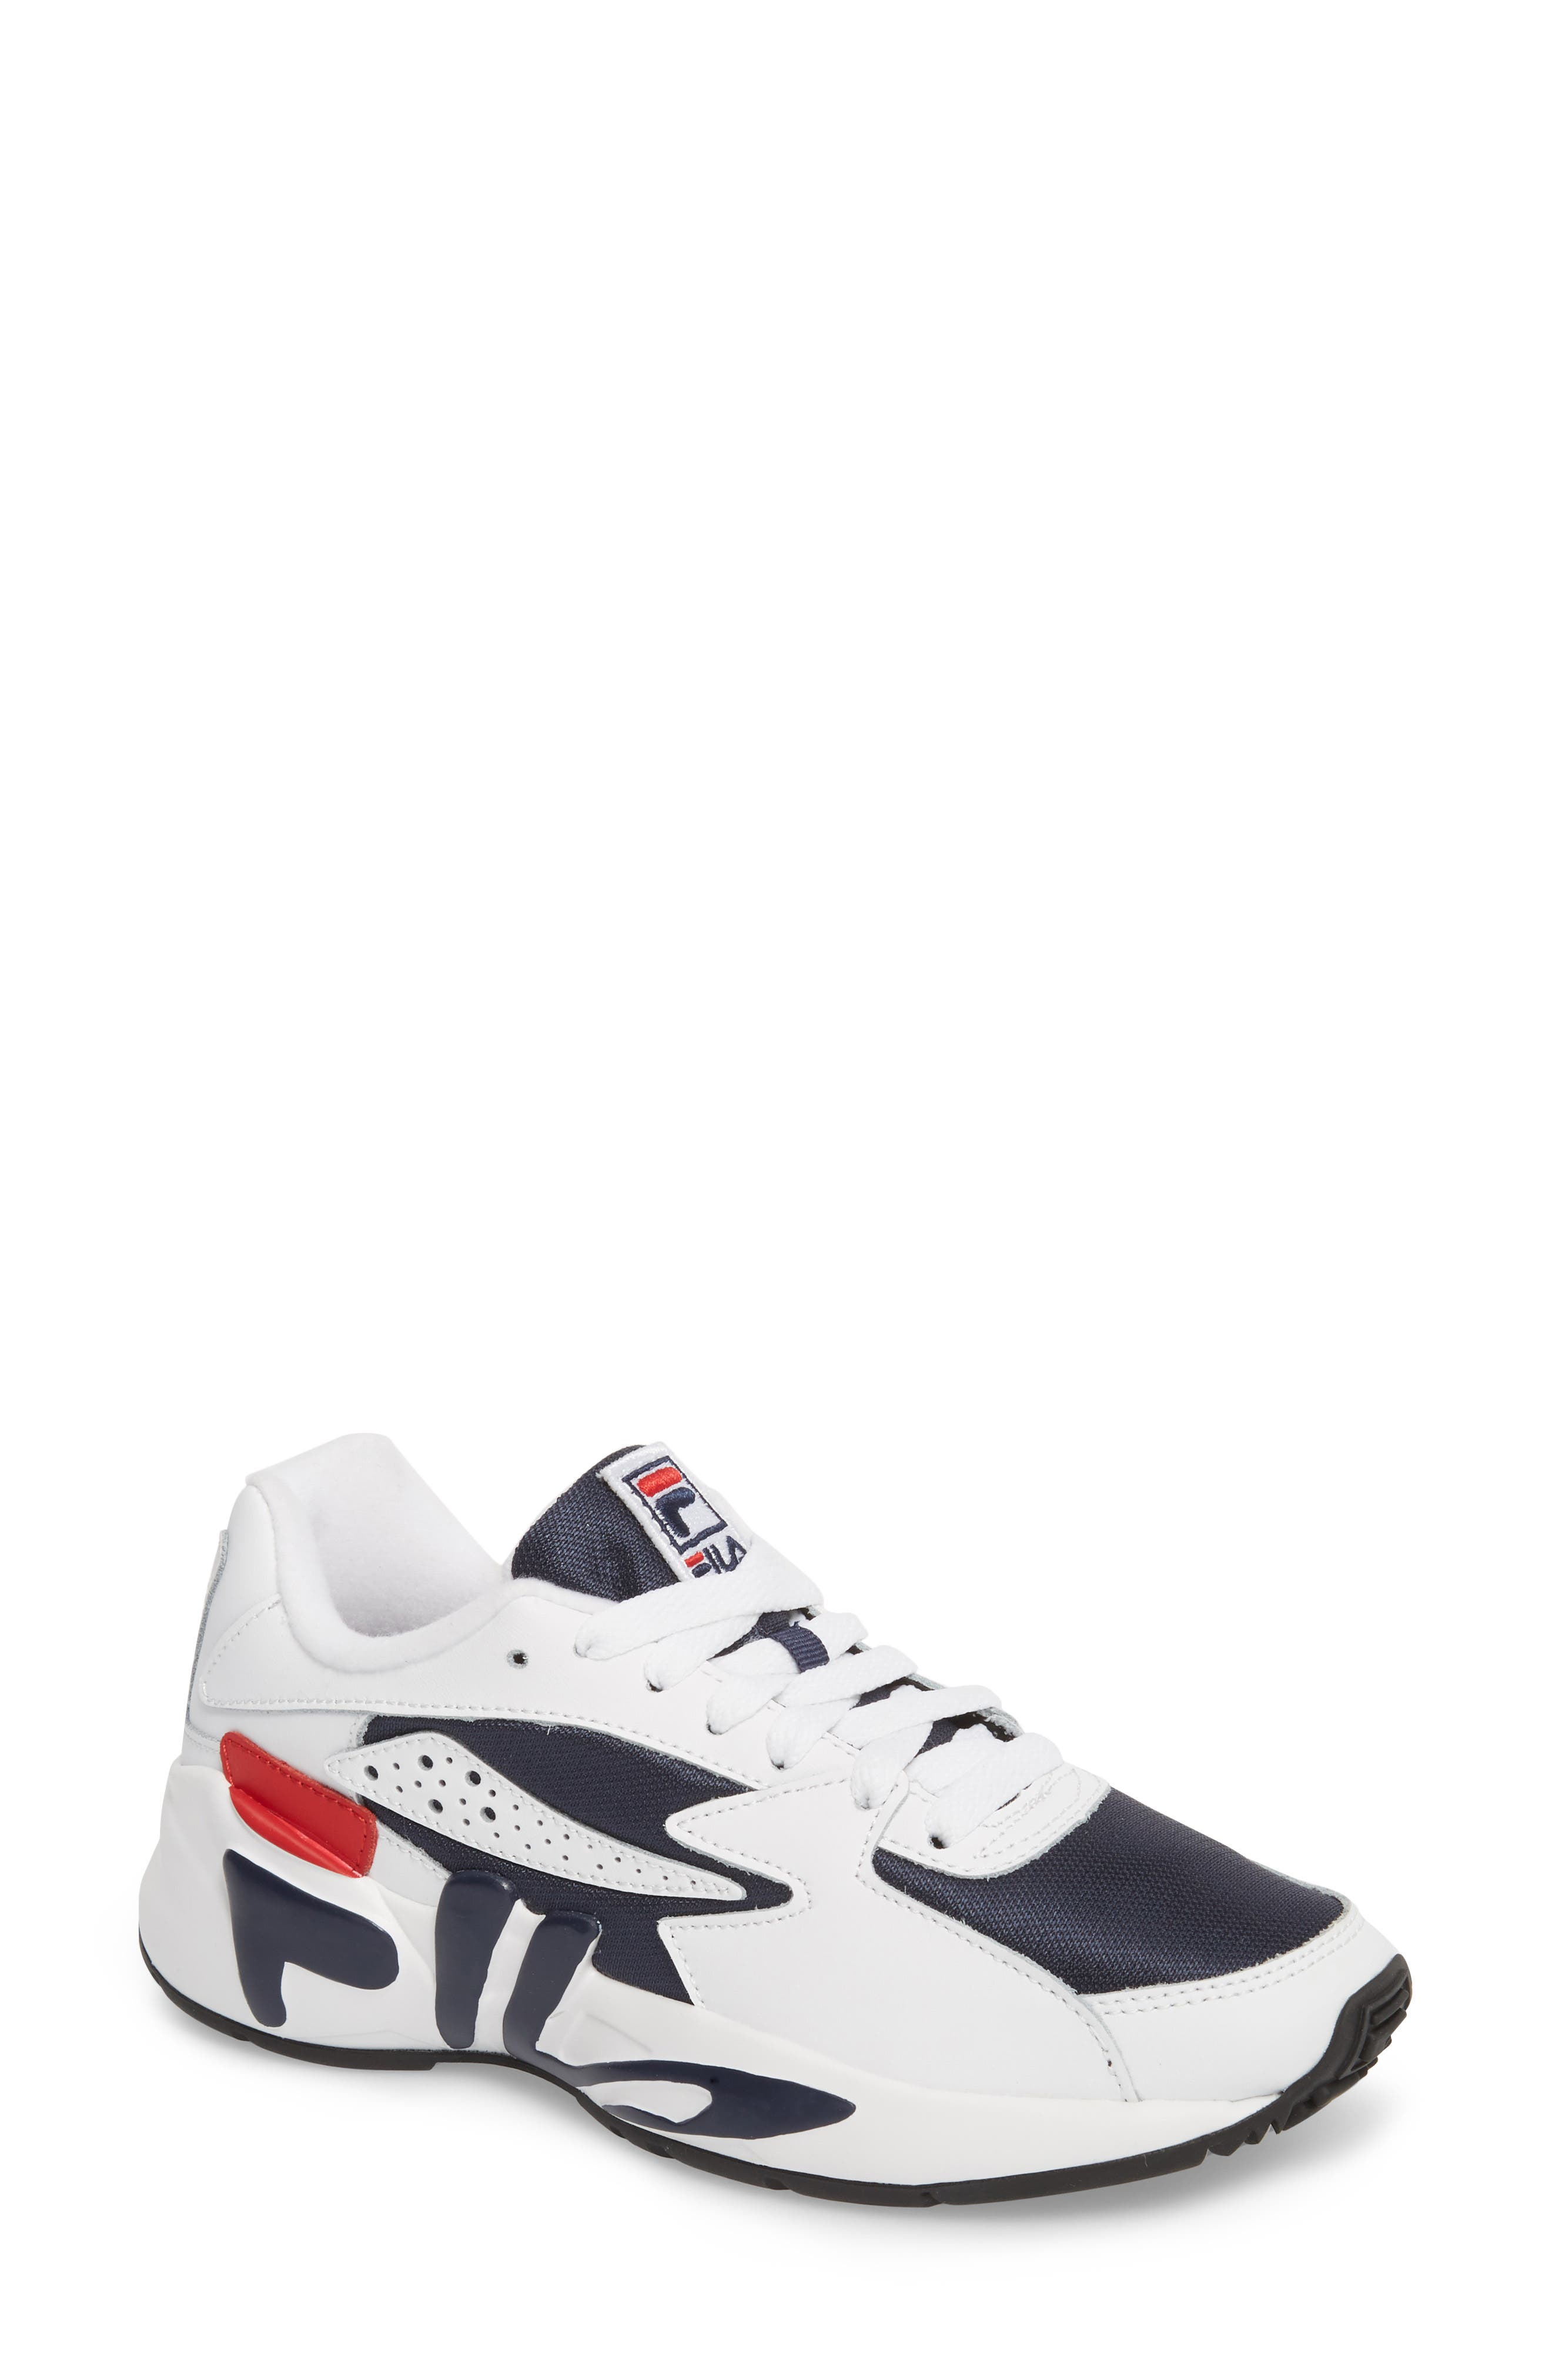 Mindblower Shoe,                         Main,                         color, WHT/ FNVY/ FRED